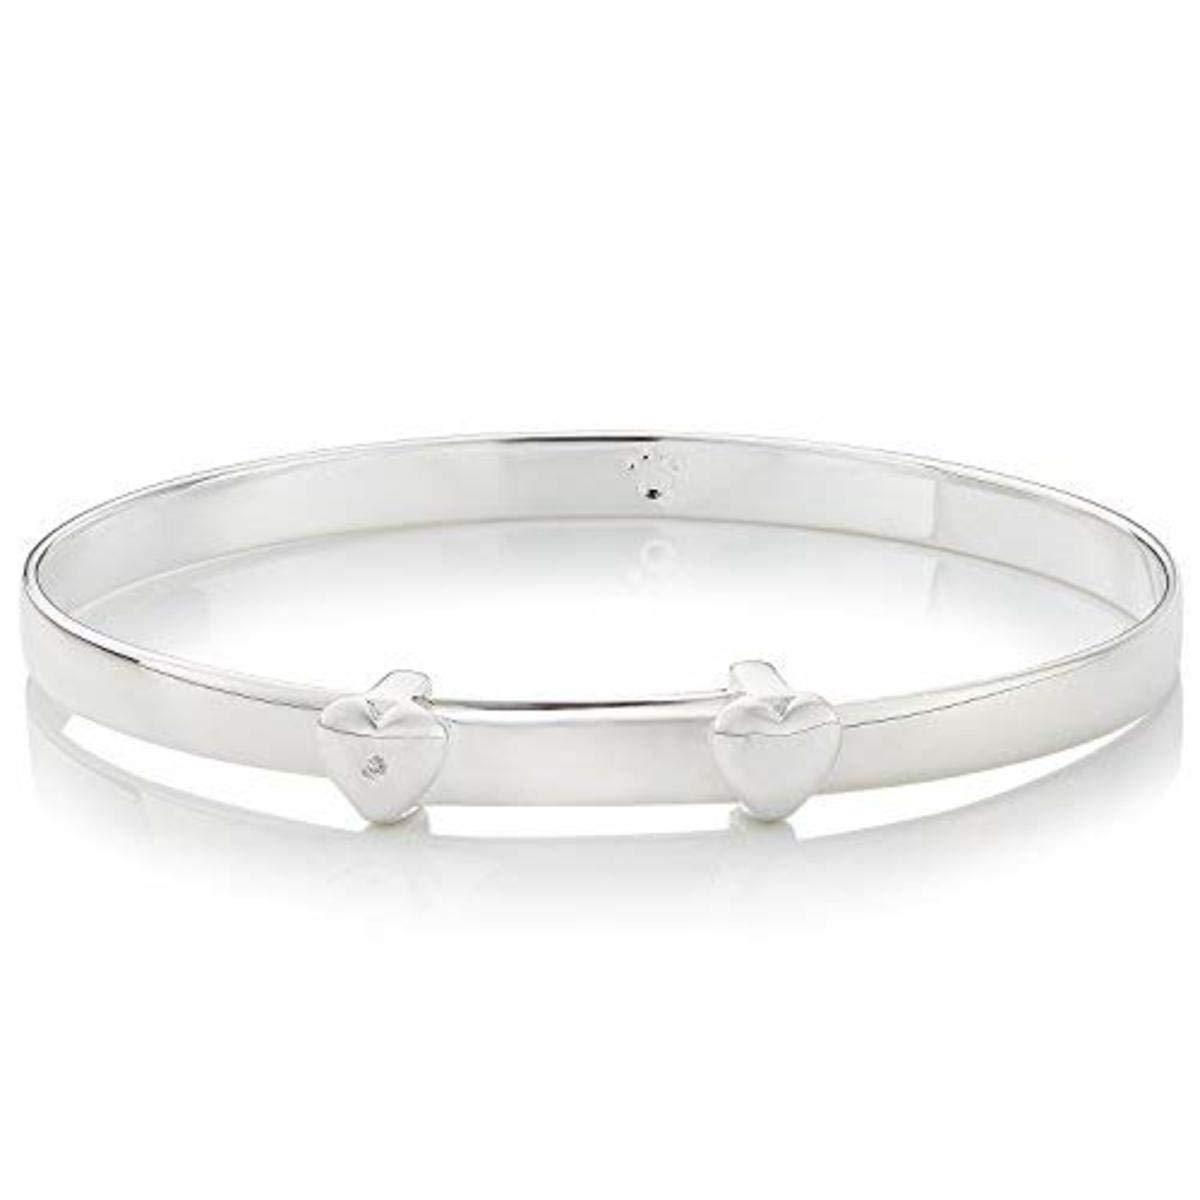 Molly B London 925 Sterling Silver Baby's First Diamond Baptism Bangle - Perfect Newborn Jewelry Arrives with Luxury Gift Box